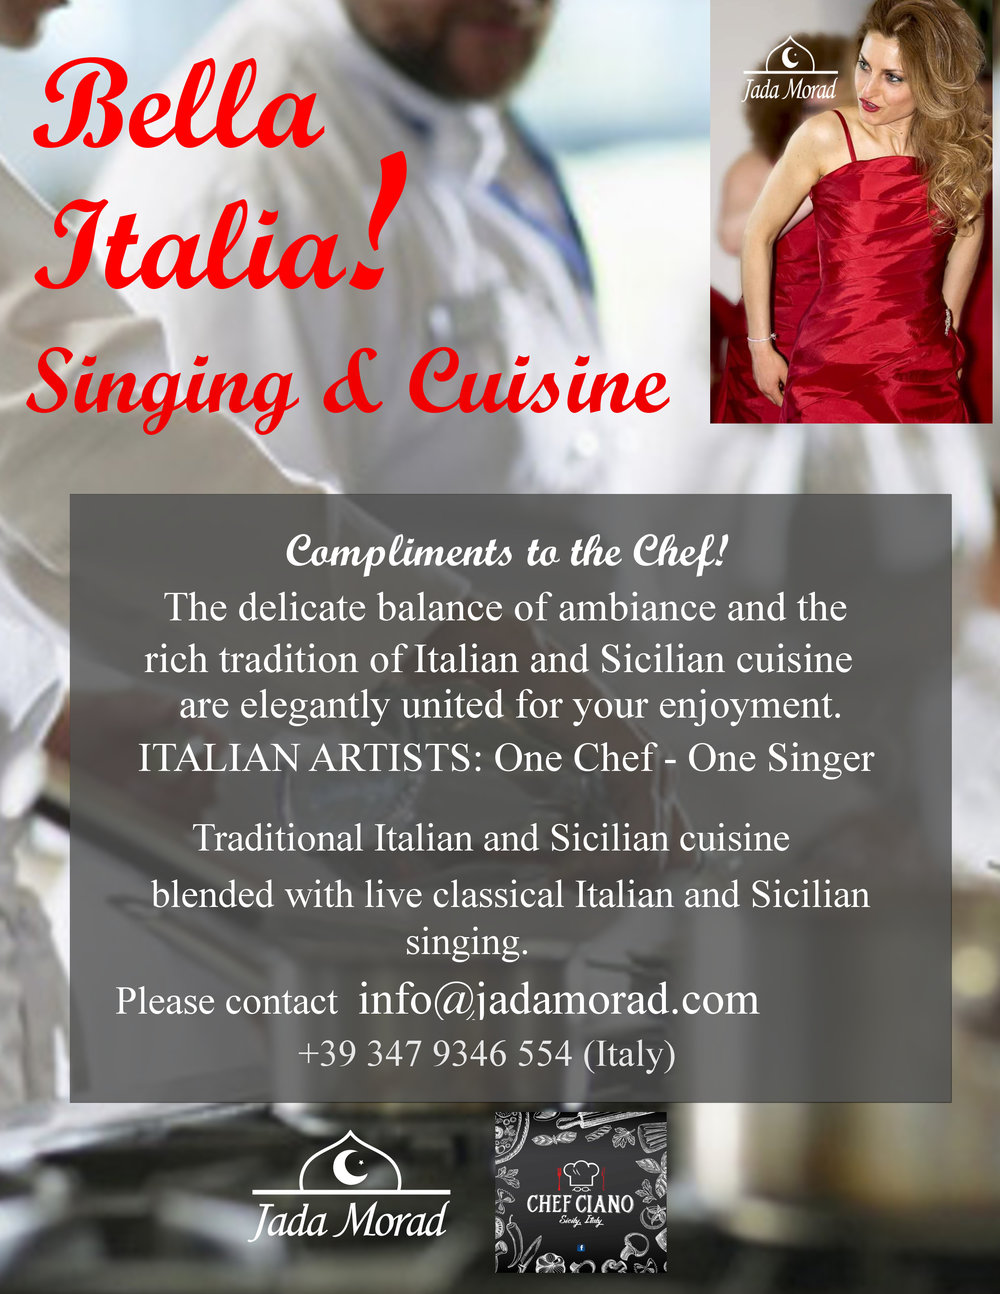 Bella Italia! Singing & Cuisine Official